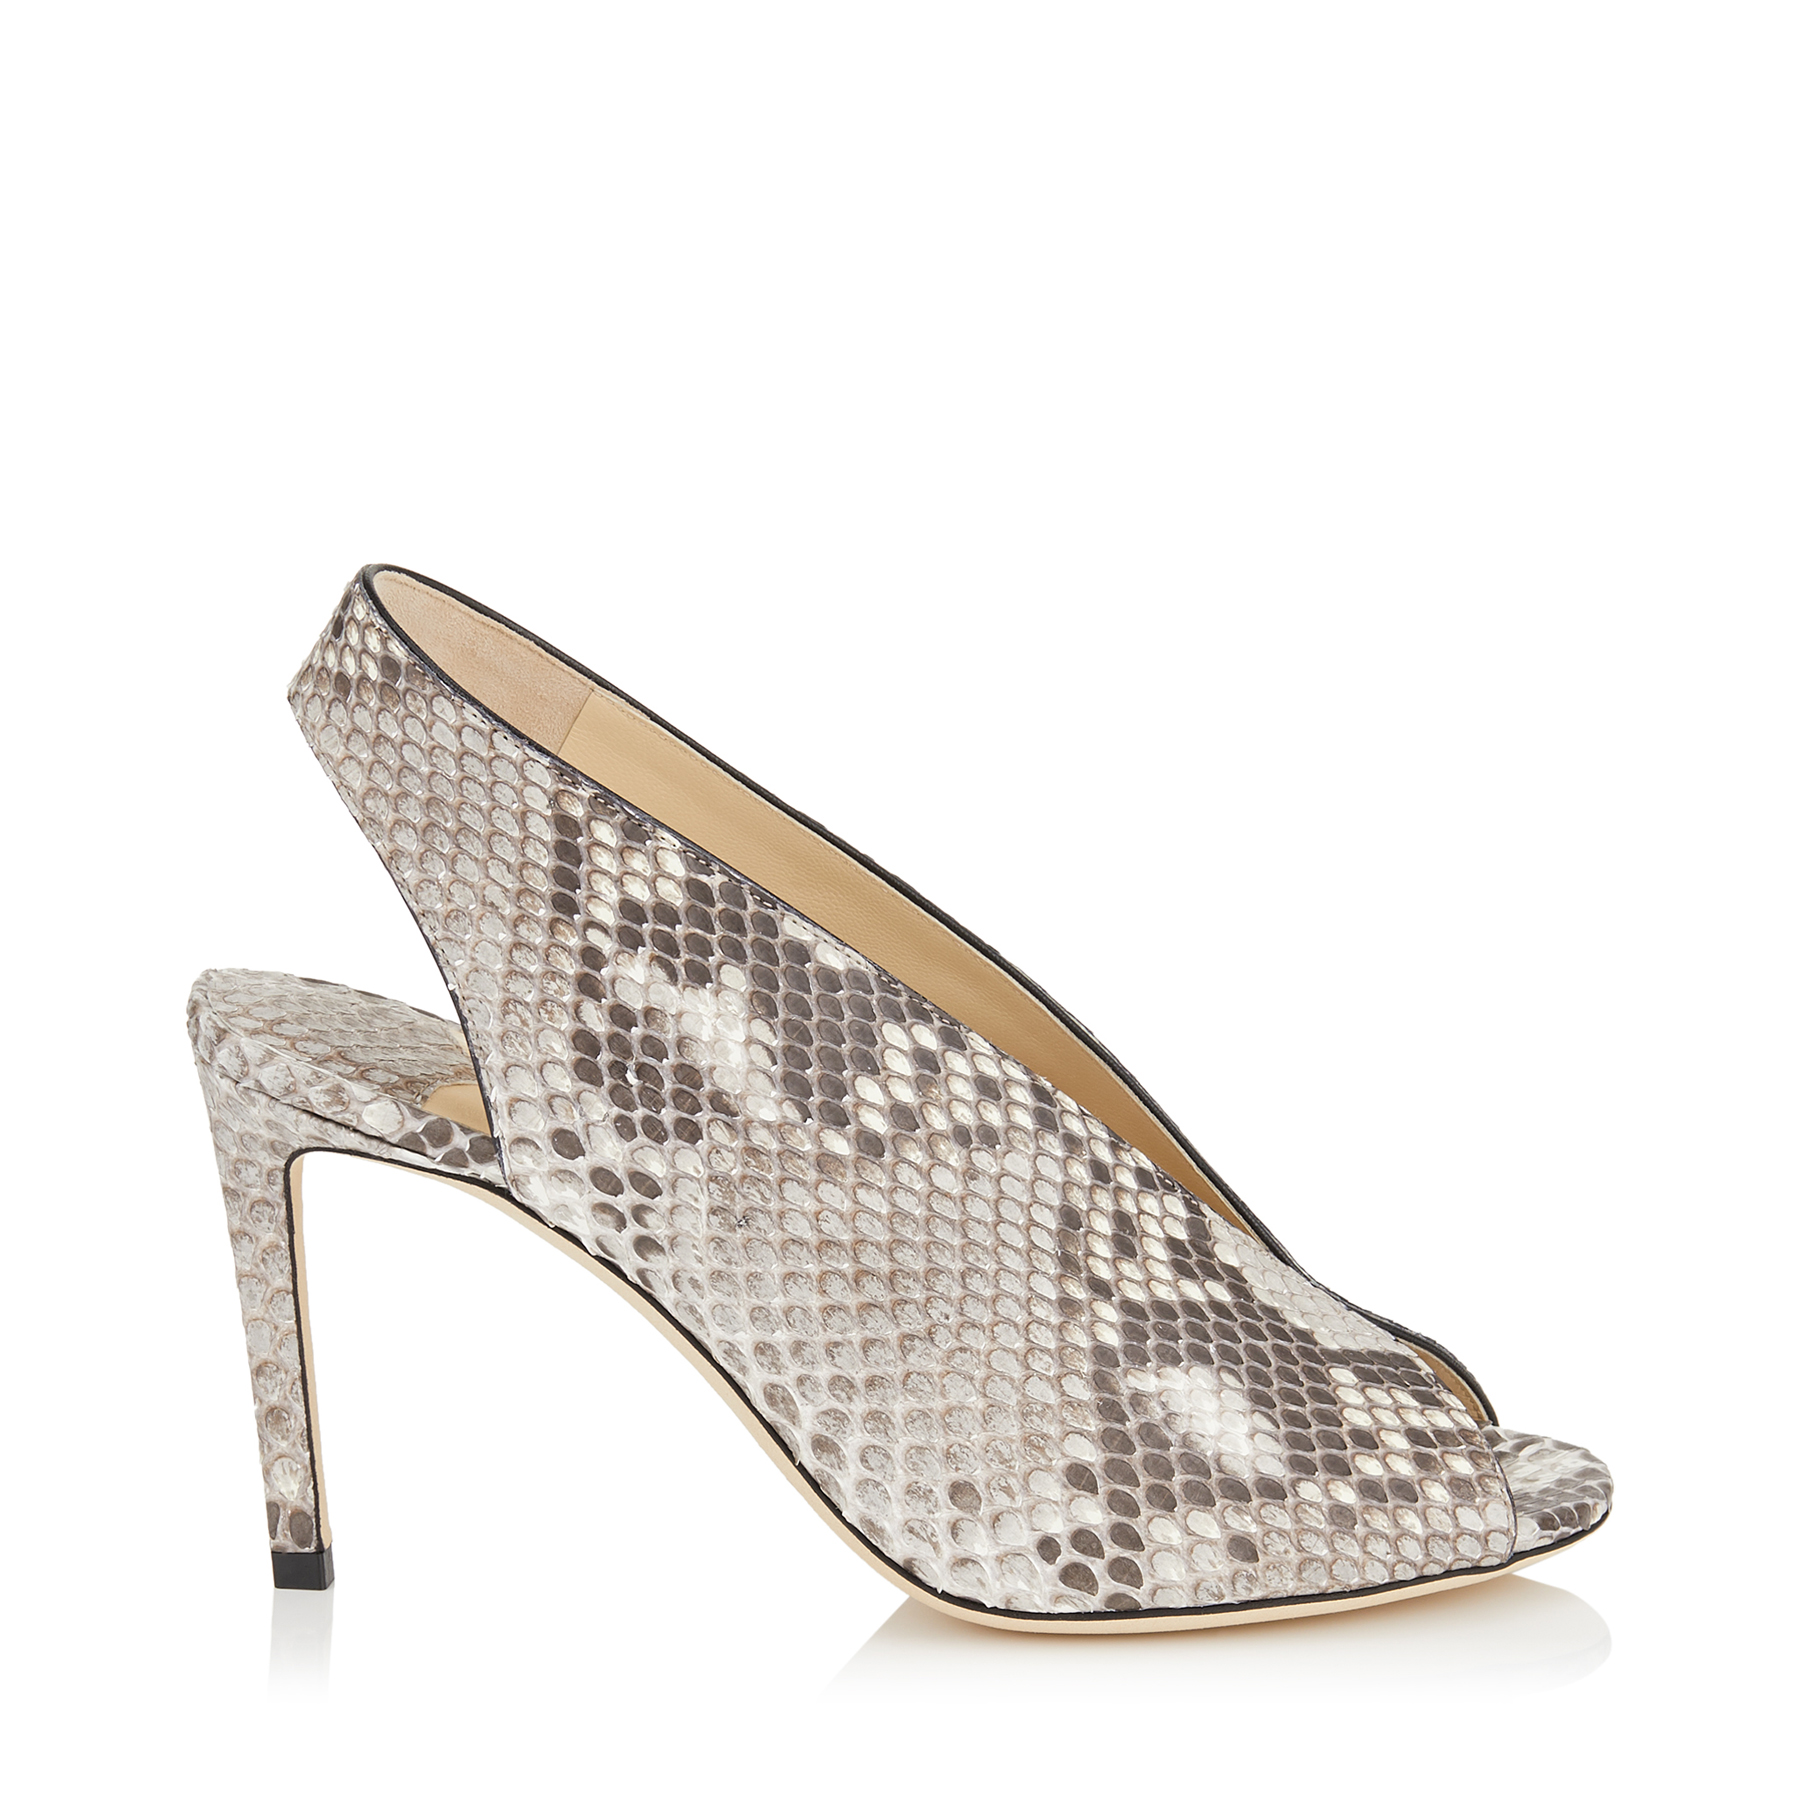 SHAR 85 Natural Matt Python Sandal Booties by Jimmy Choo